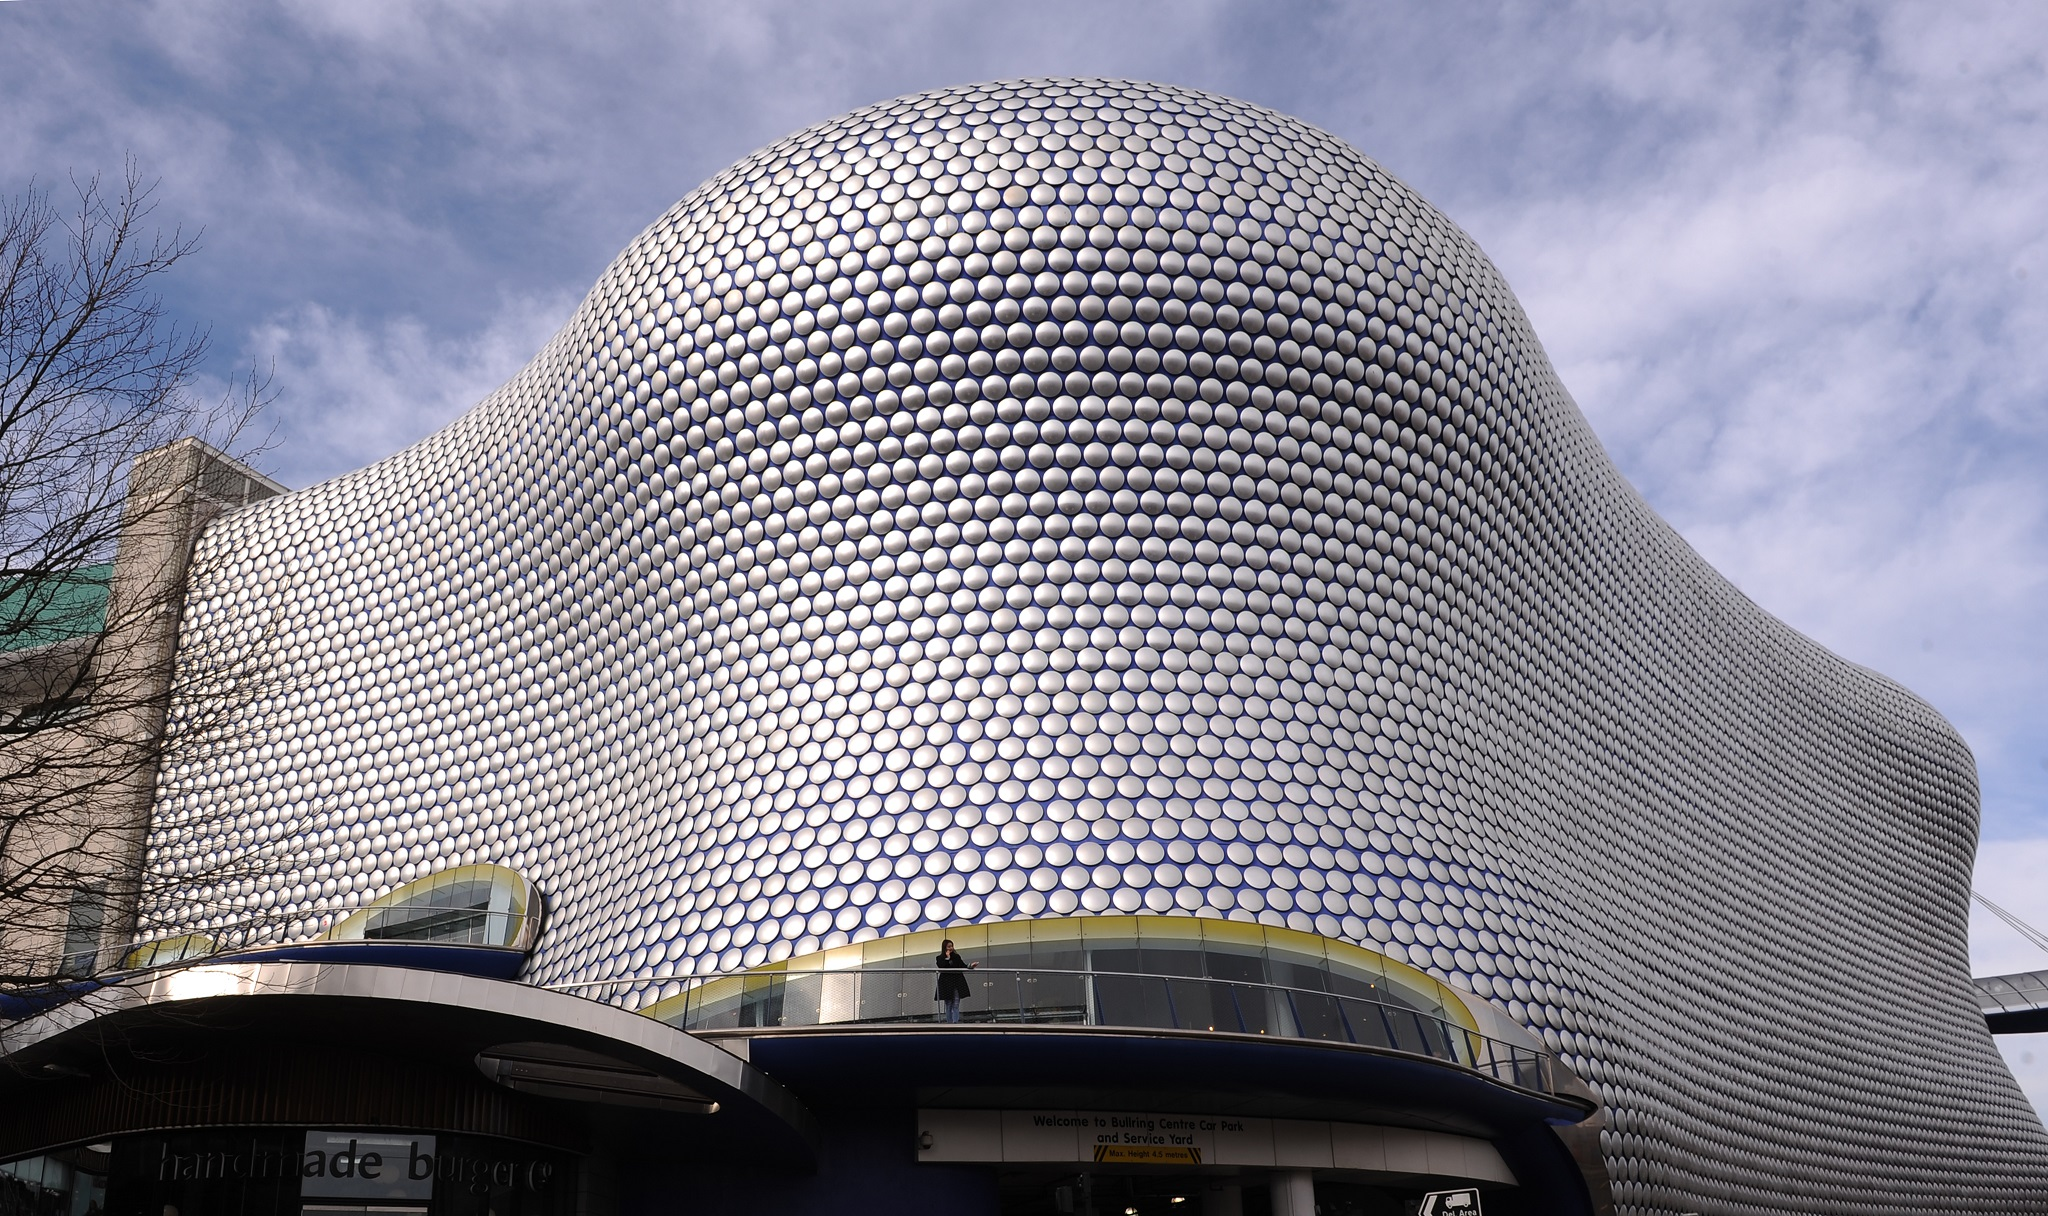 The Bullring centre in Birmingham